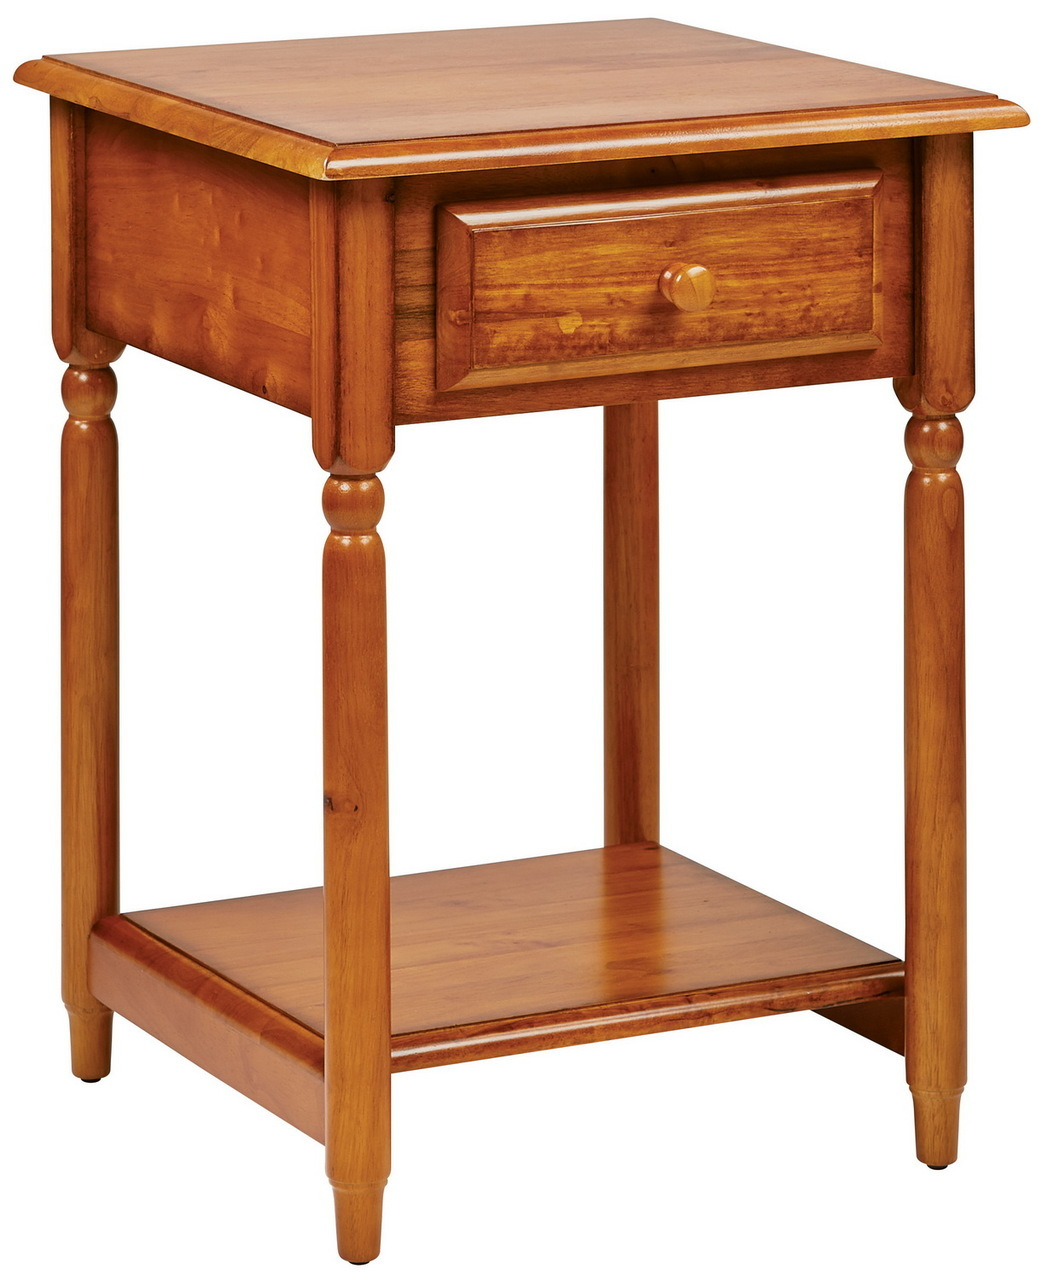 cherry end tables knob hill antique table large kitchen danish slim black side powell turino dining set cute living room ideas what laura ashley triangle west elm chairs cushions